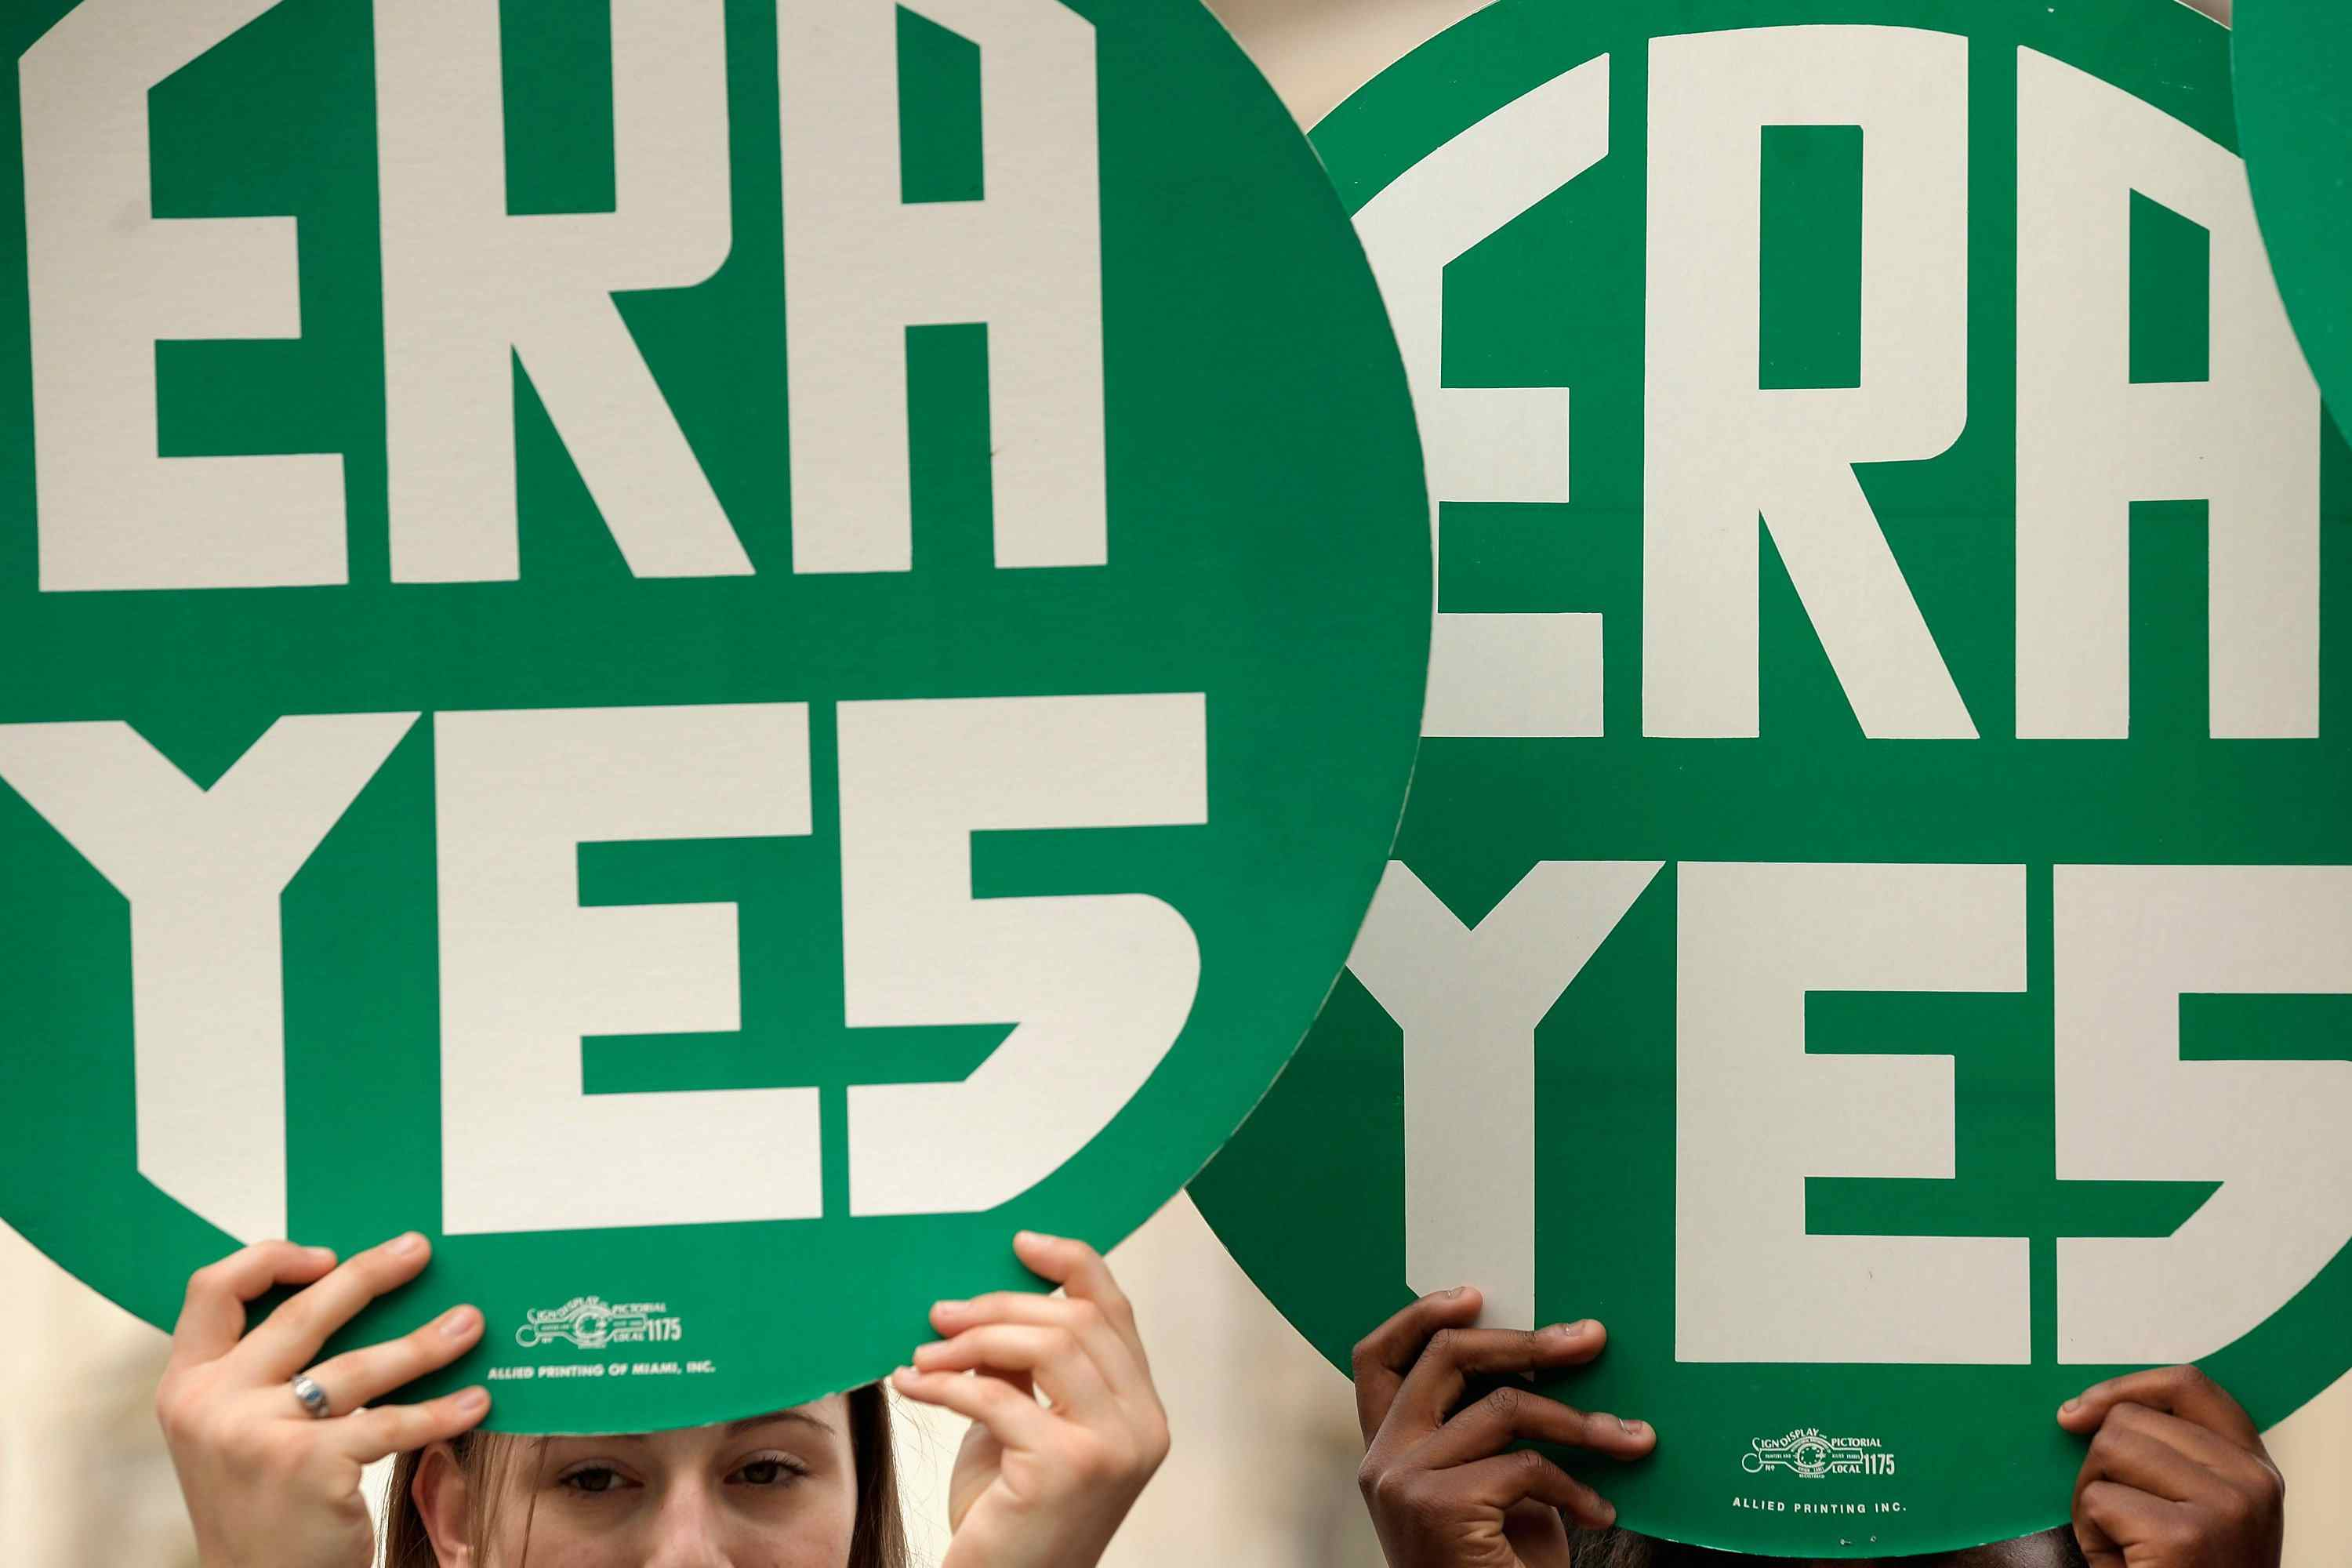 ERA Yes signs